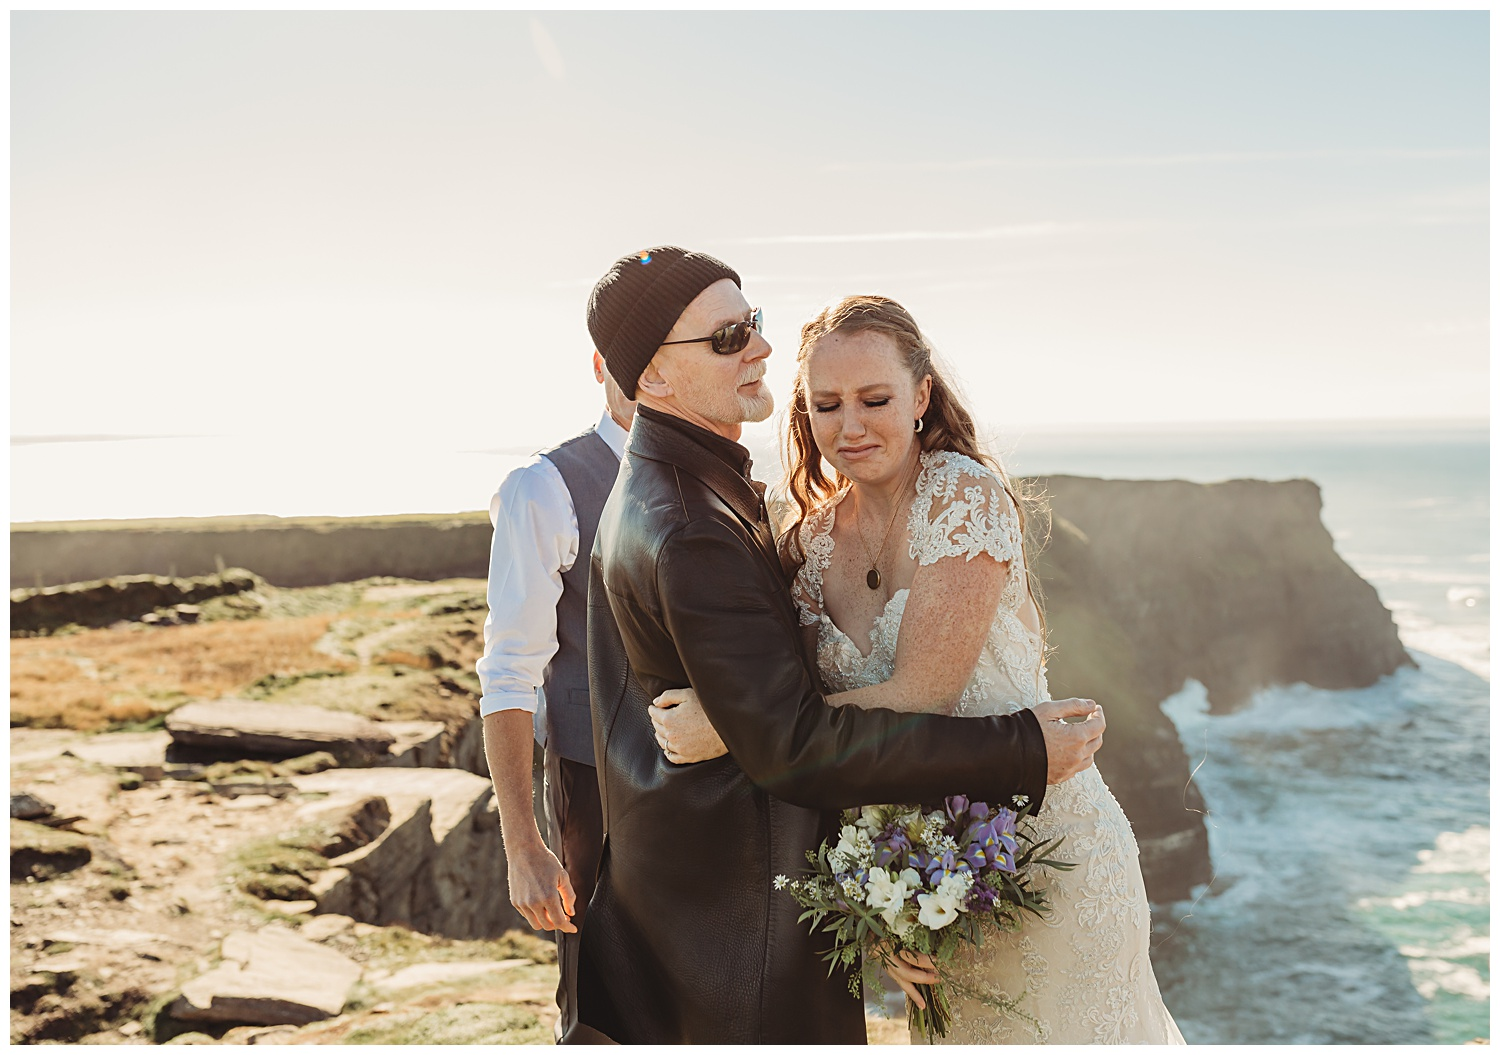 The Cliffs of Moher Destination Wedding Liscannor, County Clare, Ireland_1250.jpg